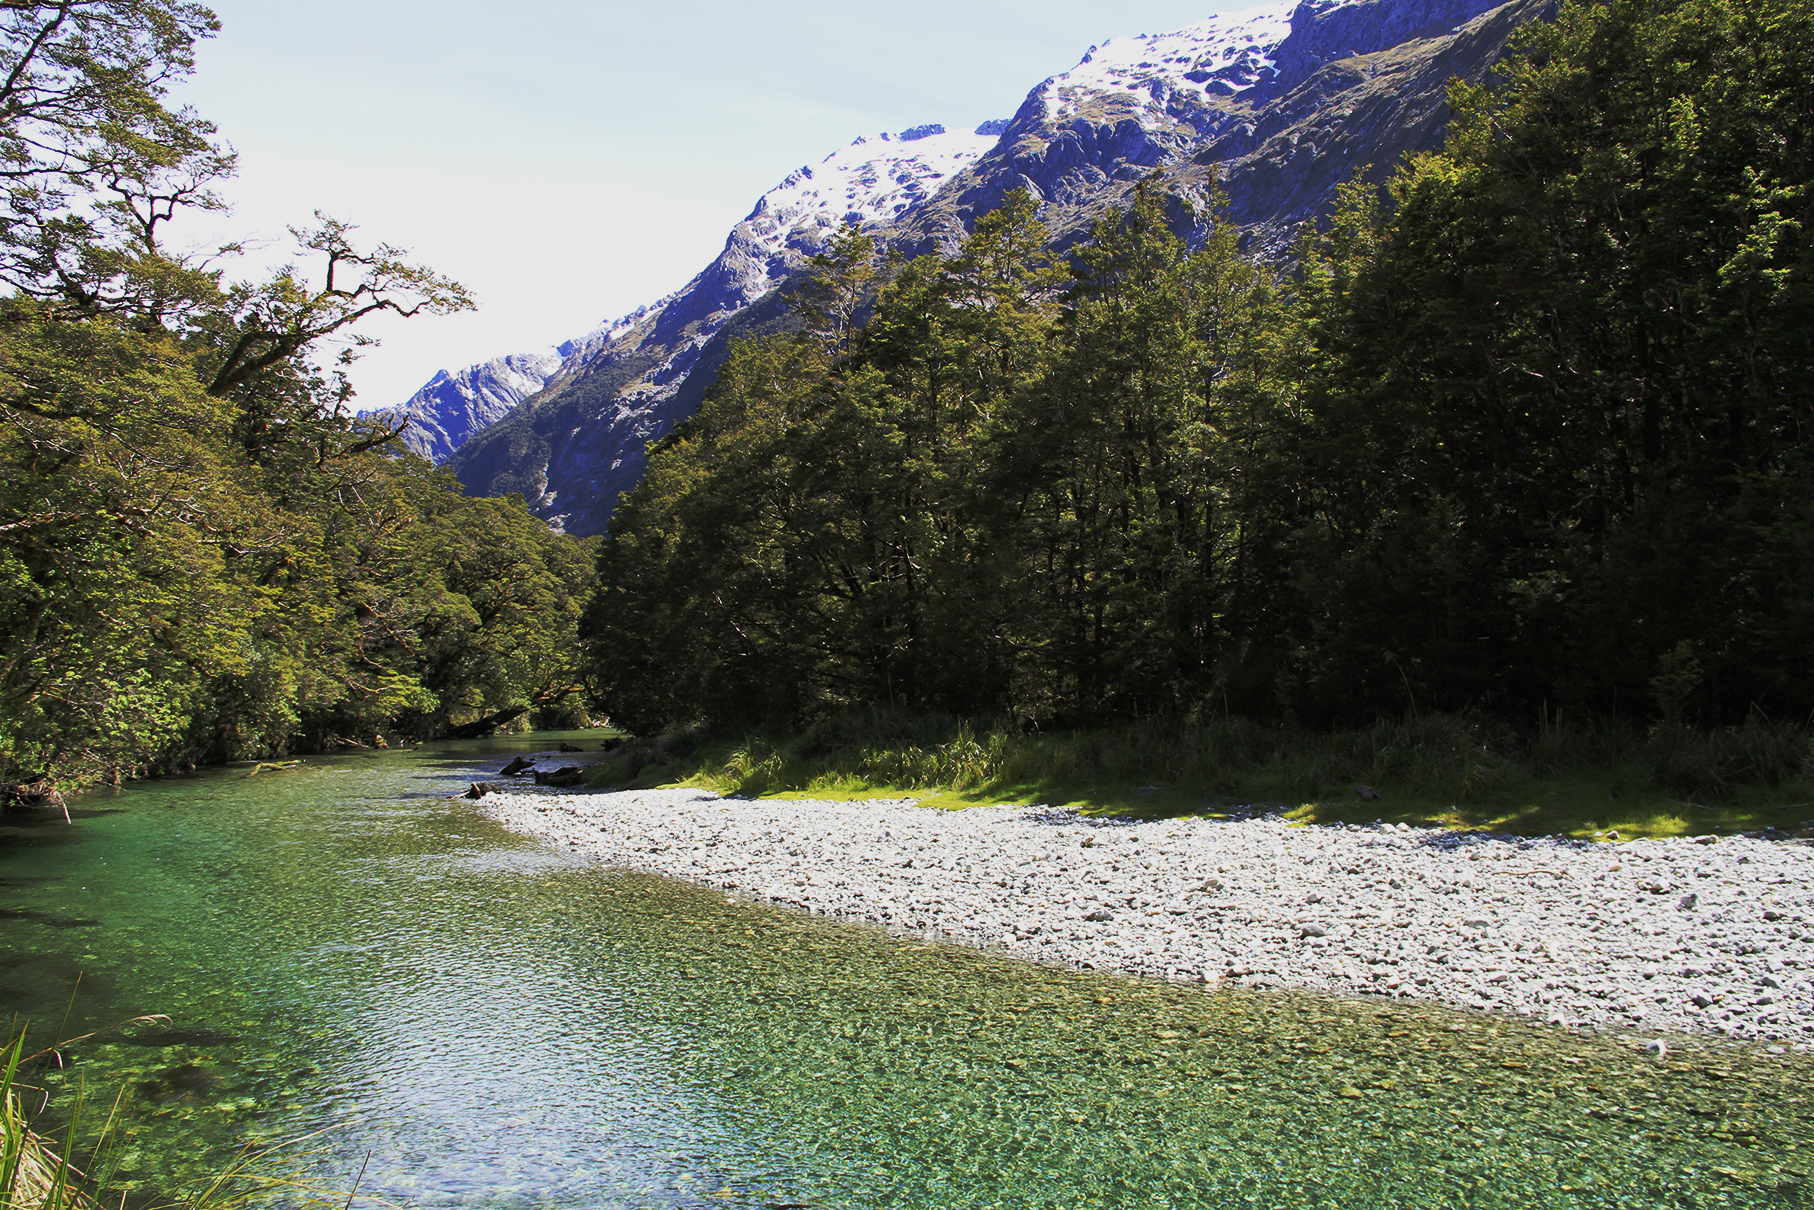 "SOUTH ISLAND, NZ<strong>ADVENTURE BRANDING</strong><a href=""/worky"">VIEW</a>"